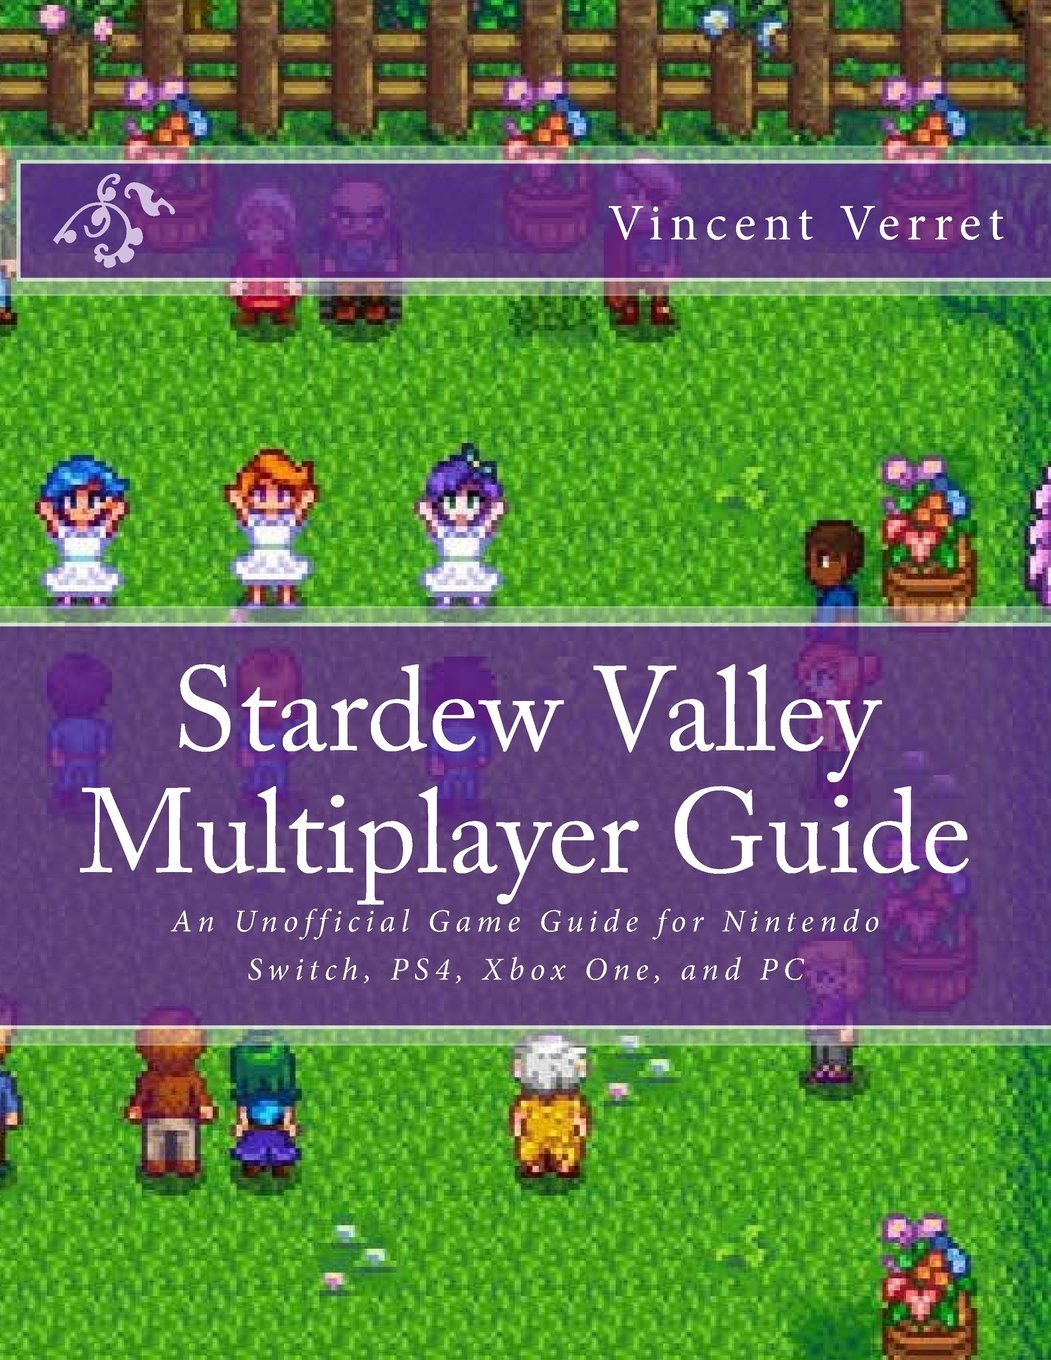 Stardew Valley Multiplayer Guide: An Unofficial Game Guide